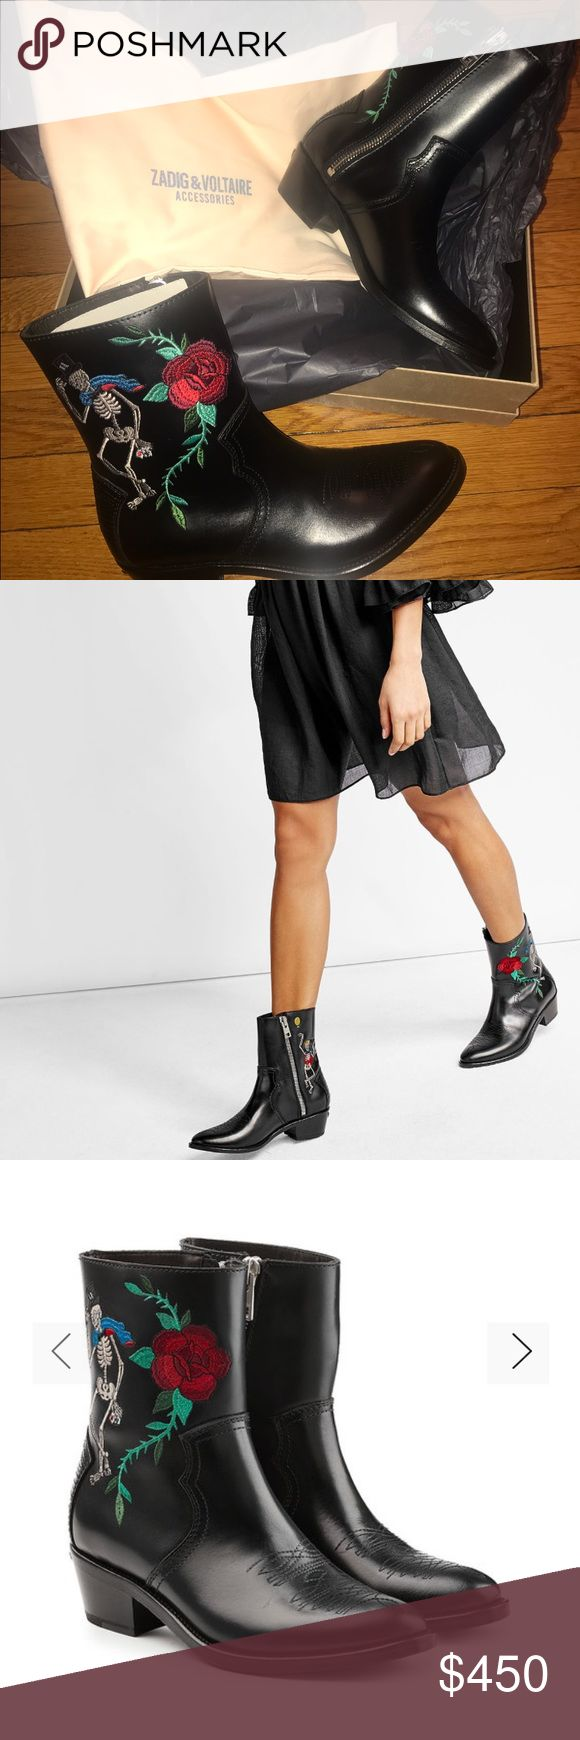 BRAND NEW! Fashionable cowboy boots. Zadig & Voltaire Cowboy Boots. Cowboy boots are given a sleek makeover from Zadig & Voltaire. Rendered in polished black leather, the unconventional zip side meets the exclusive Virginia Elmwood embroidery and 5 cm heels. Zadig & Voltaire Shoes